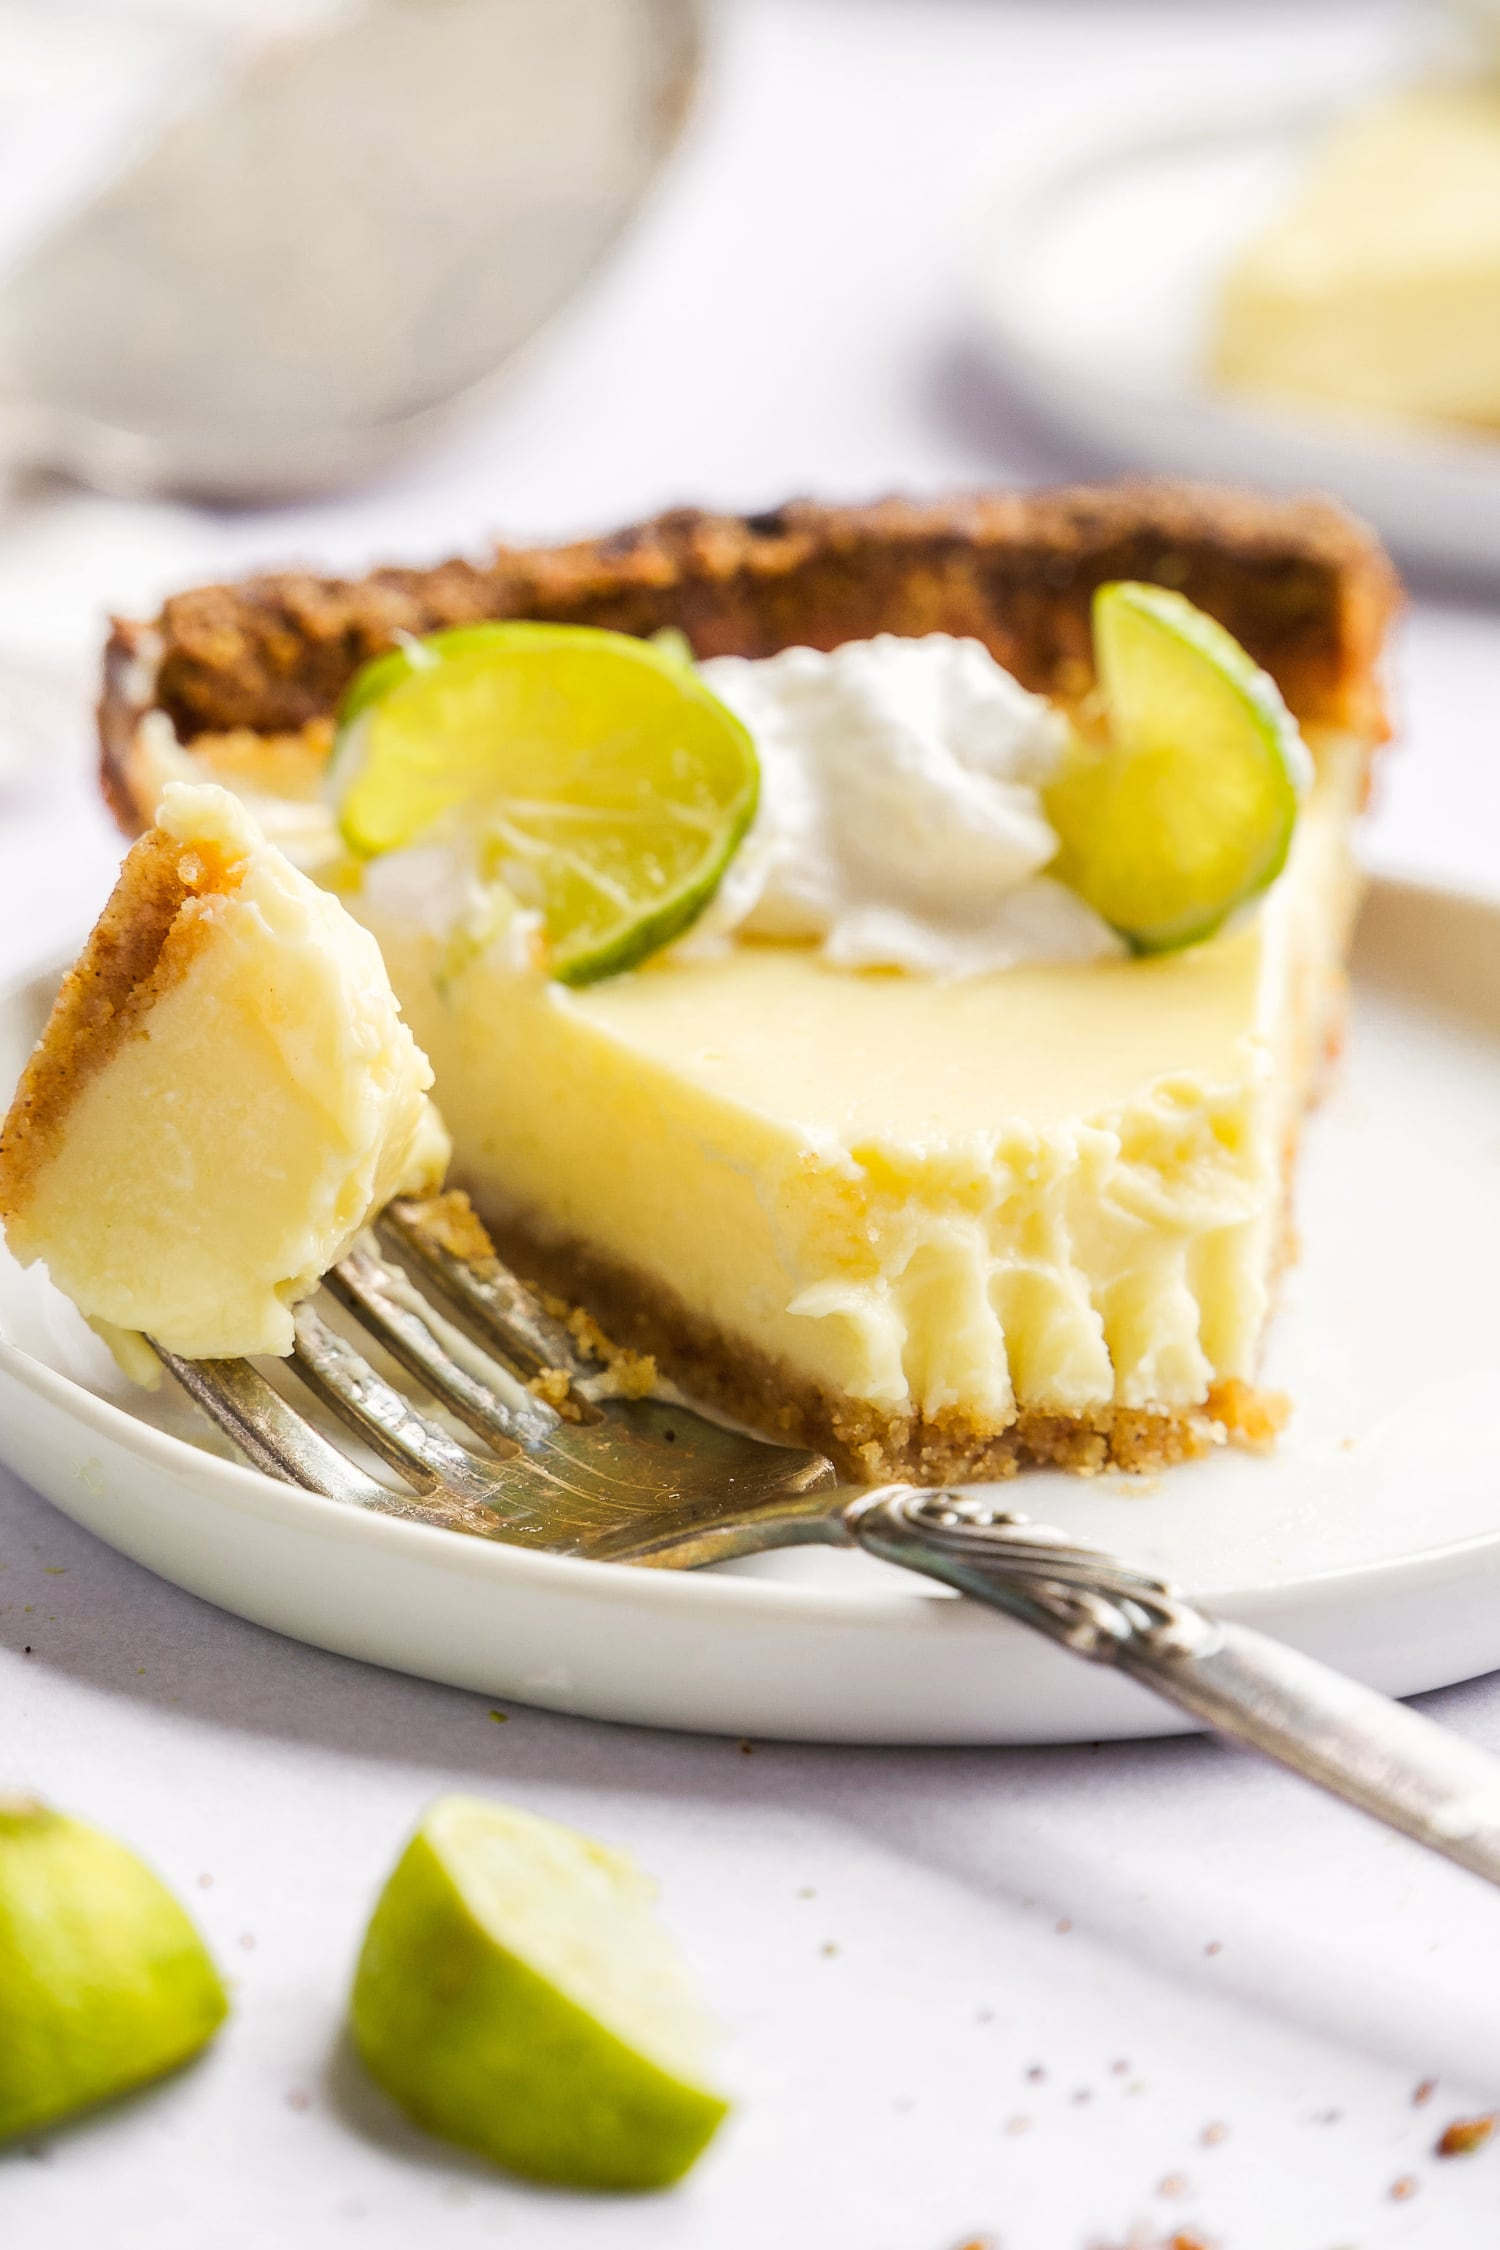 piece of dairy free key lime pie with bite taken out with a fork